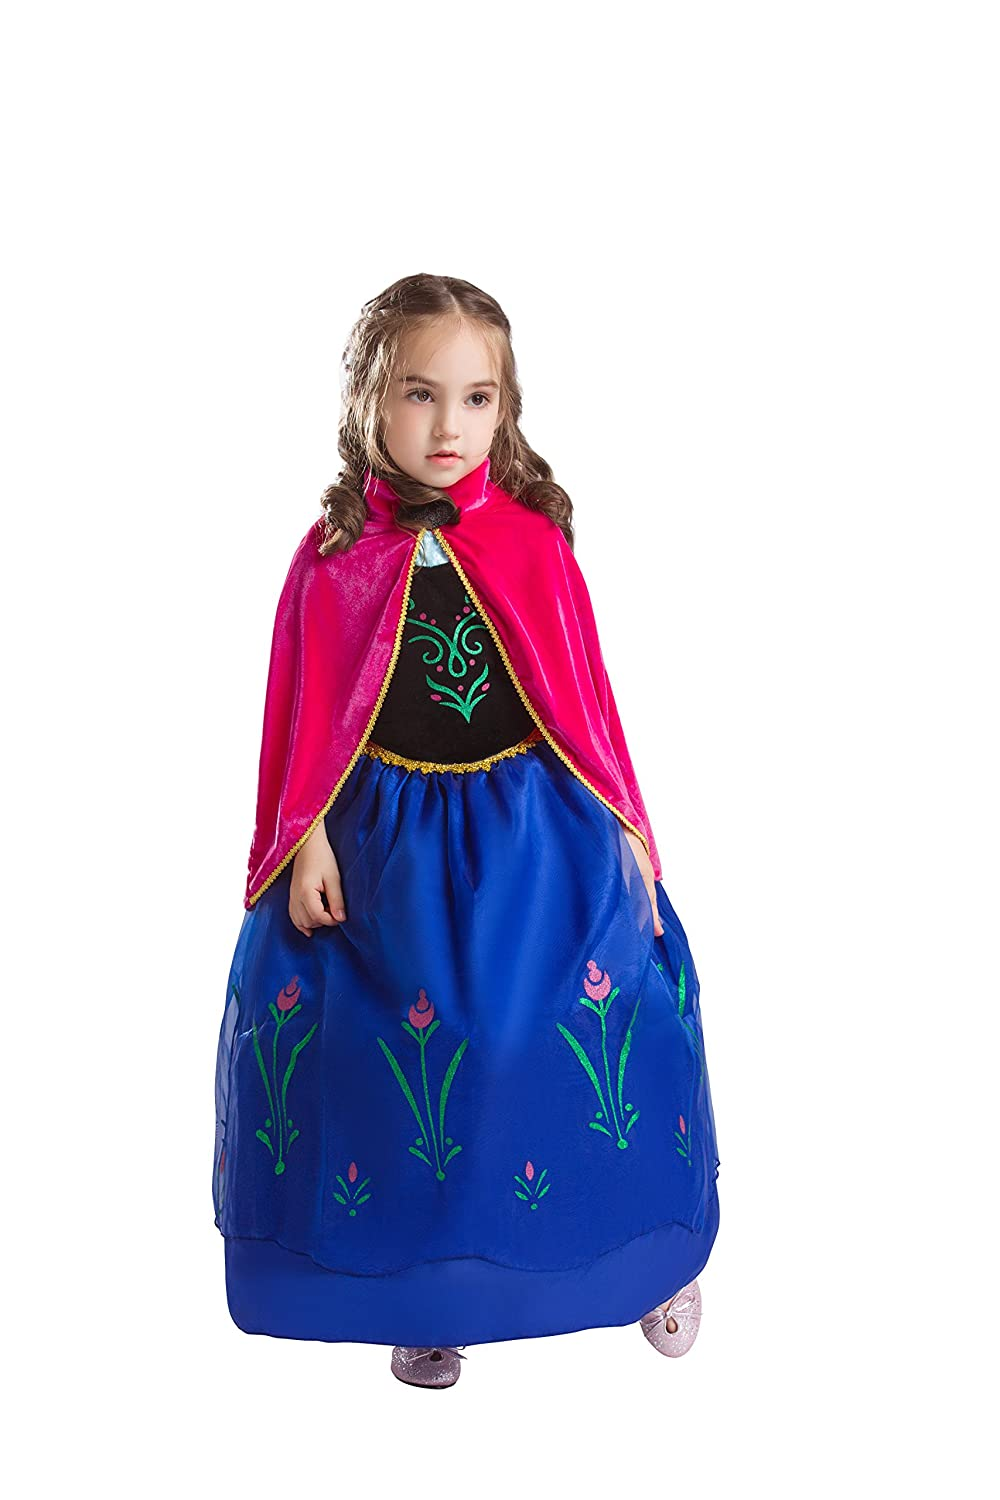 2-3 years, UK-ANNA2 ELSA /& ANNA UK Girls Party Outfit Fancy Dress Snow Queen Princess Halloween Costume Cosplay Dress FBA-ANNA2